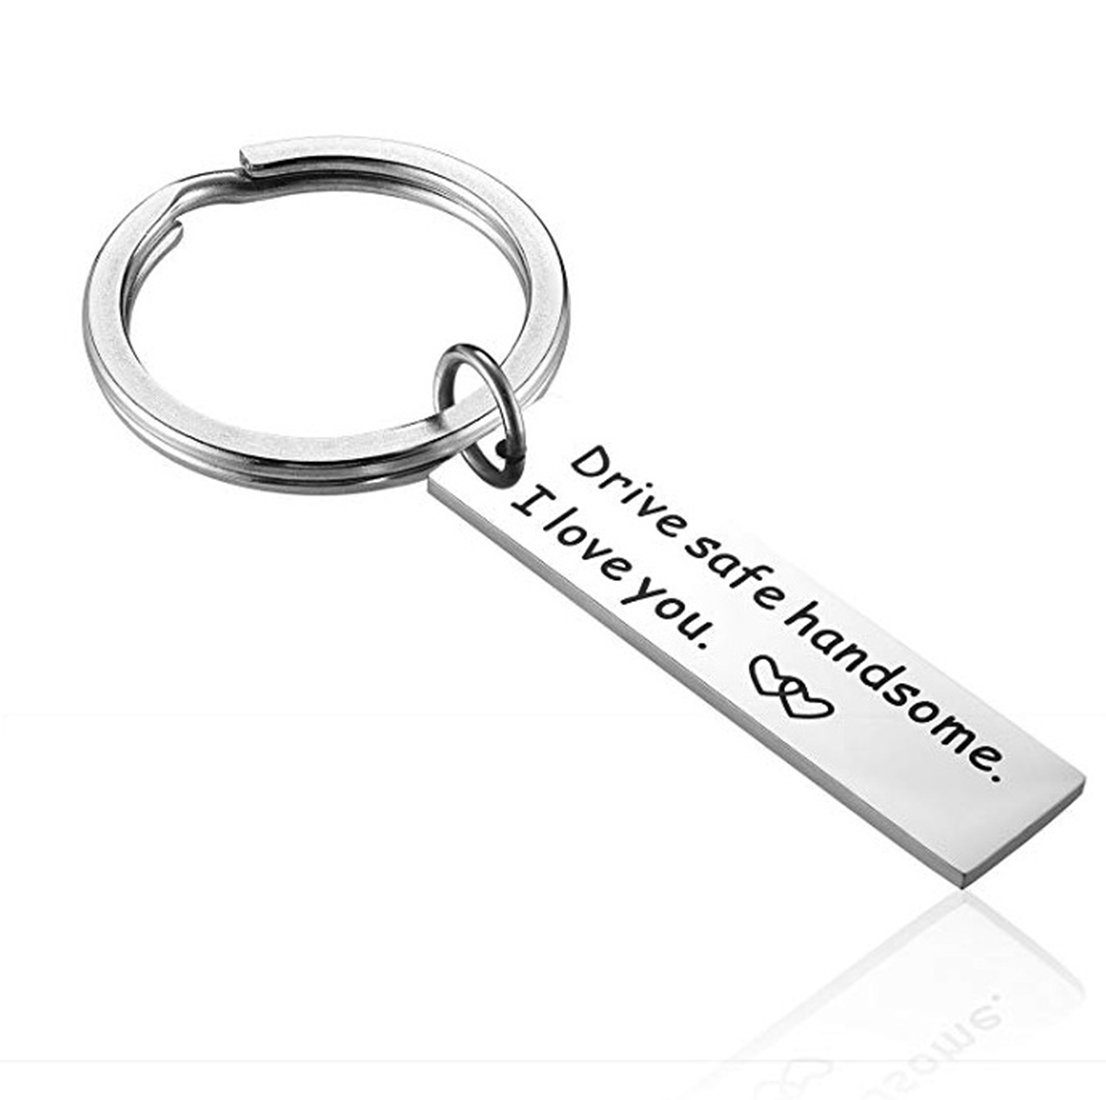 WYLSY Drive Safe Keychain Handsome I Love You Car Trucker Husband gift for Boyfriend Husband Dad Valentines Day Christmas Day Stocking Suffer Gift Drive safe handsome, I love you